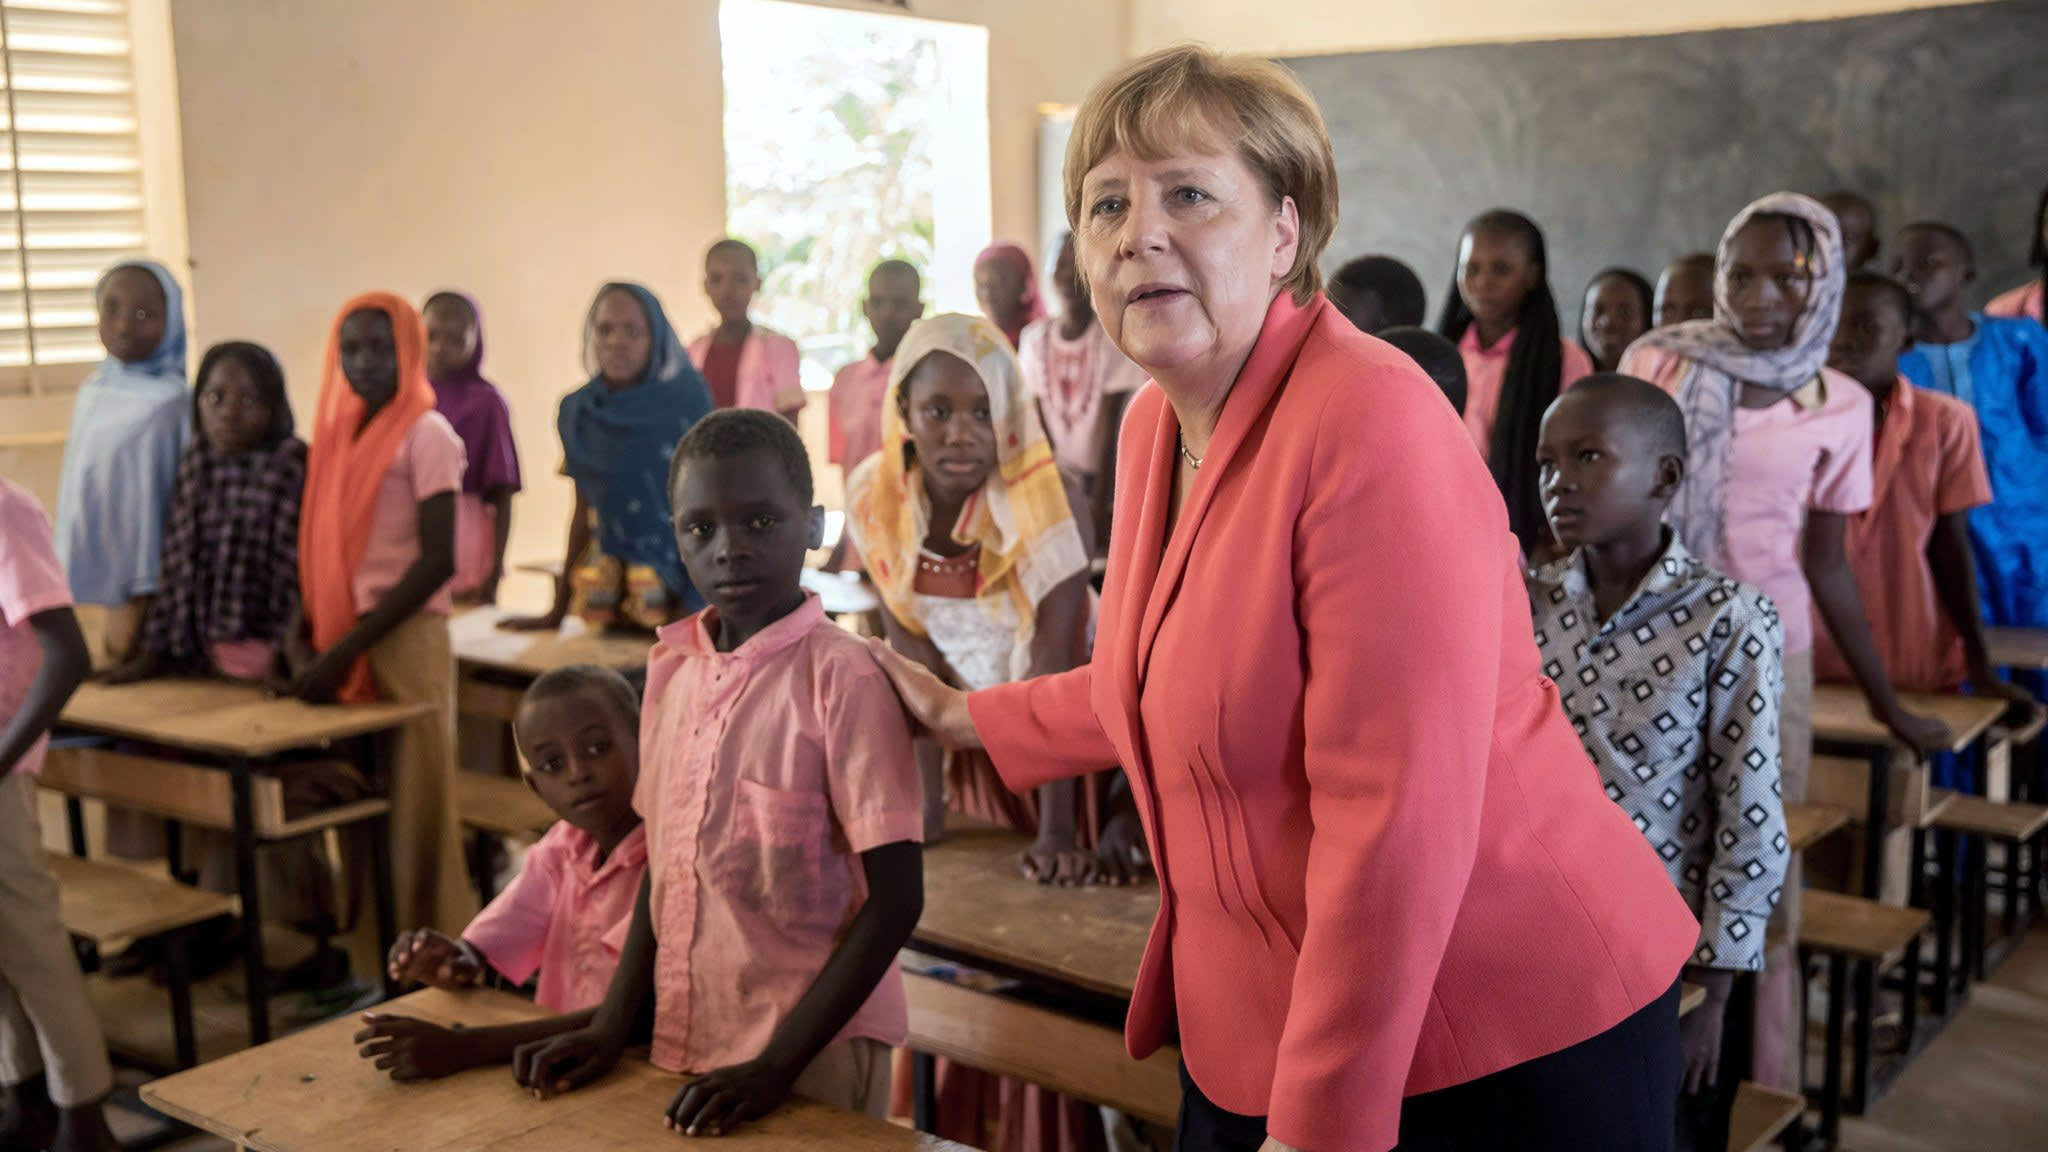 German Chancellor Angela Merkel (CDU) speaks with primary school students from the Goudell II. school in Niamey, Niger, 10 October 2016. Chancellor Merkel is on a three-day trip through Africa with stops in Mali, Niger and Ethiopia. Photo: MICHAEL KAPPELER/dpa